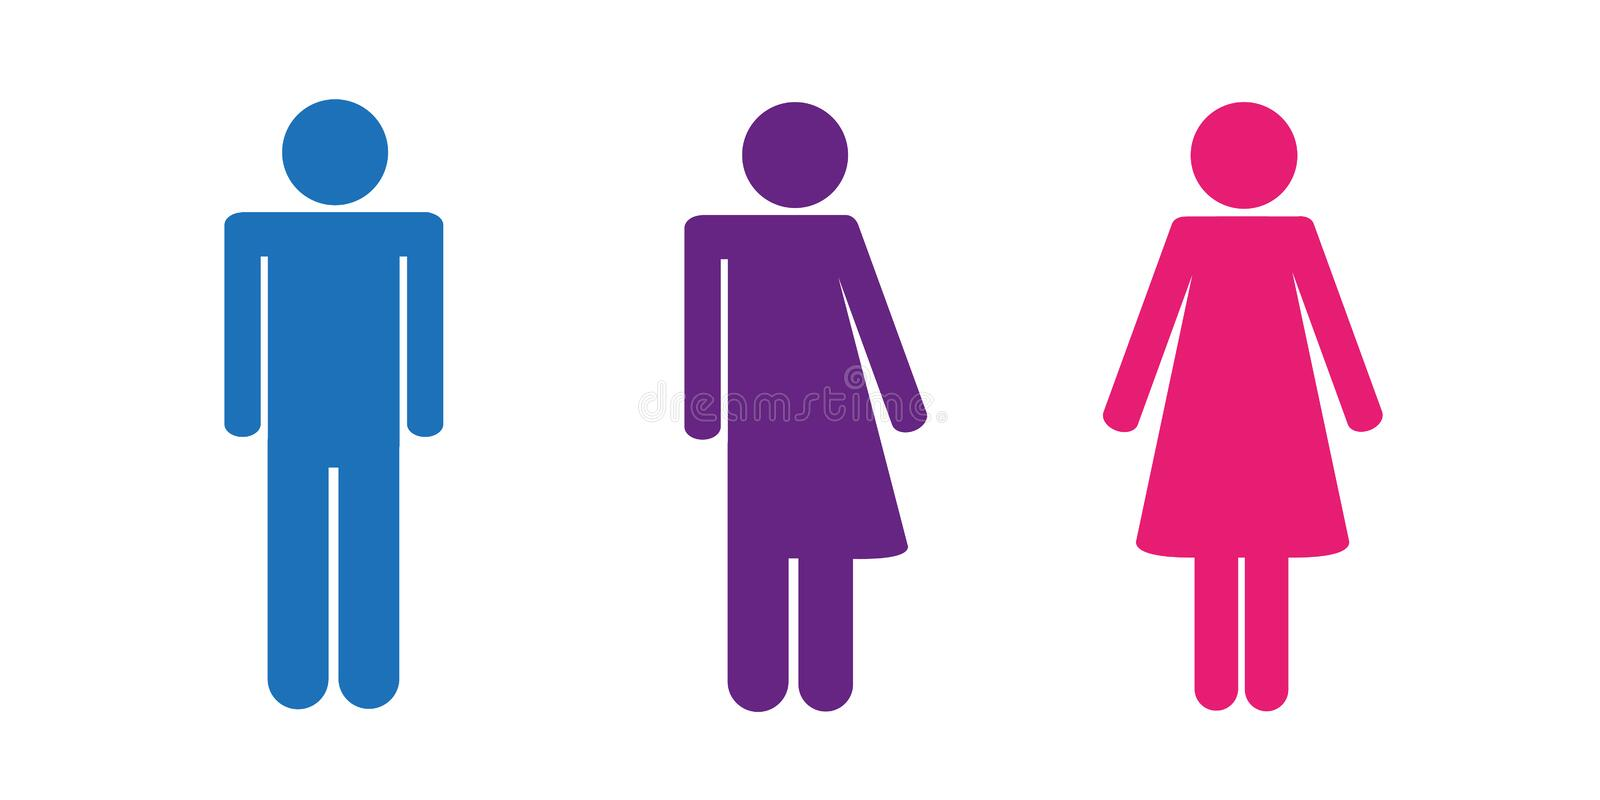 Colorful set of restroom icons including gender neutral icon pictogram vector illustration